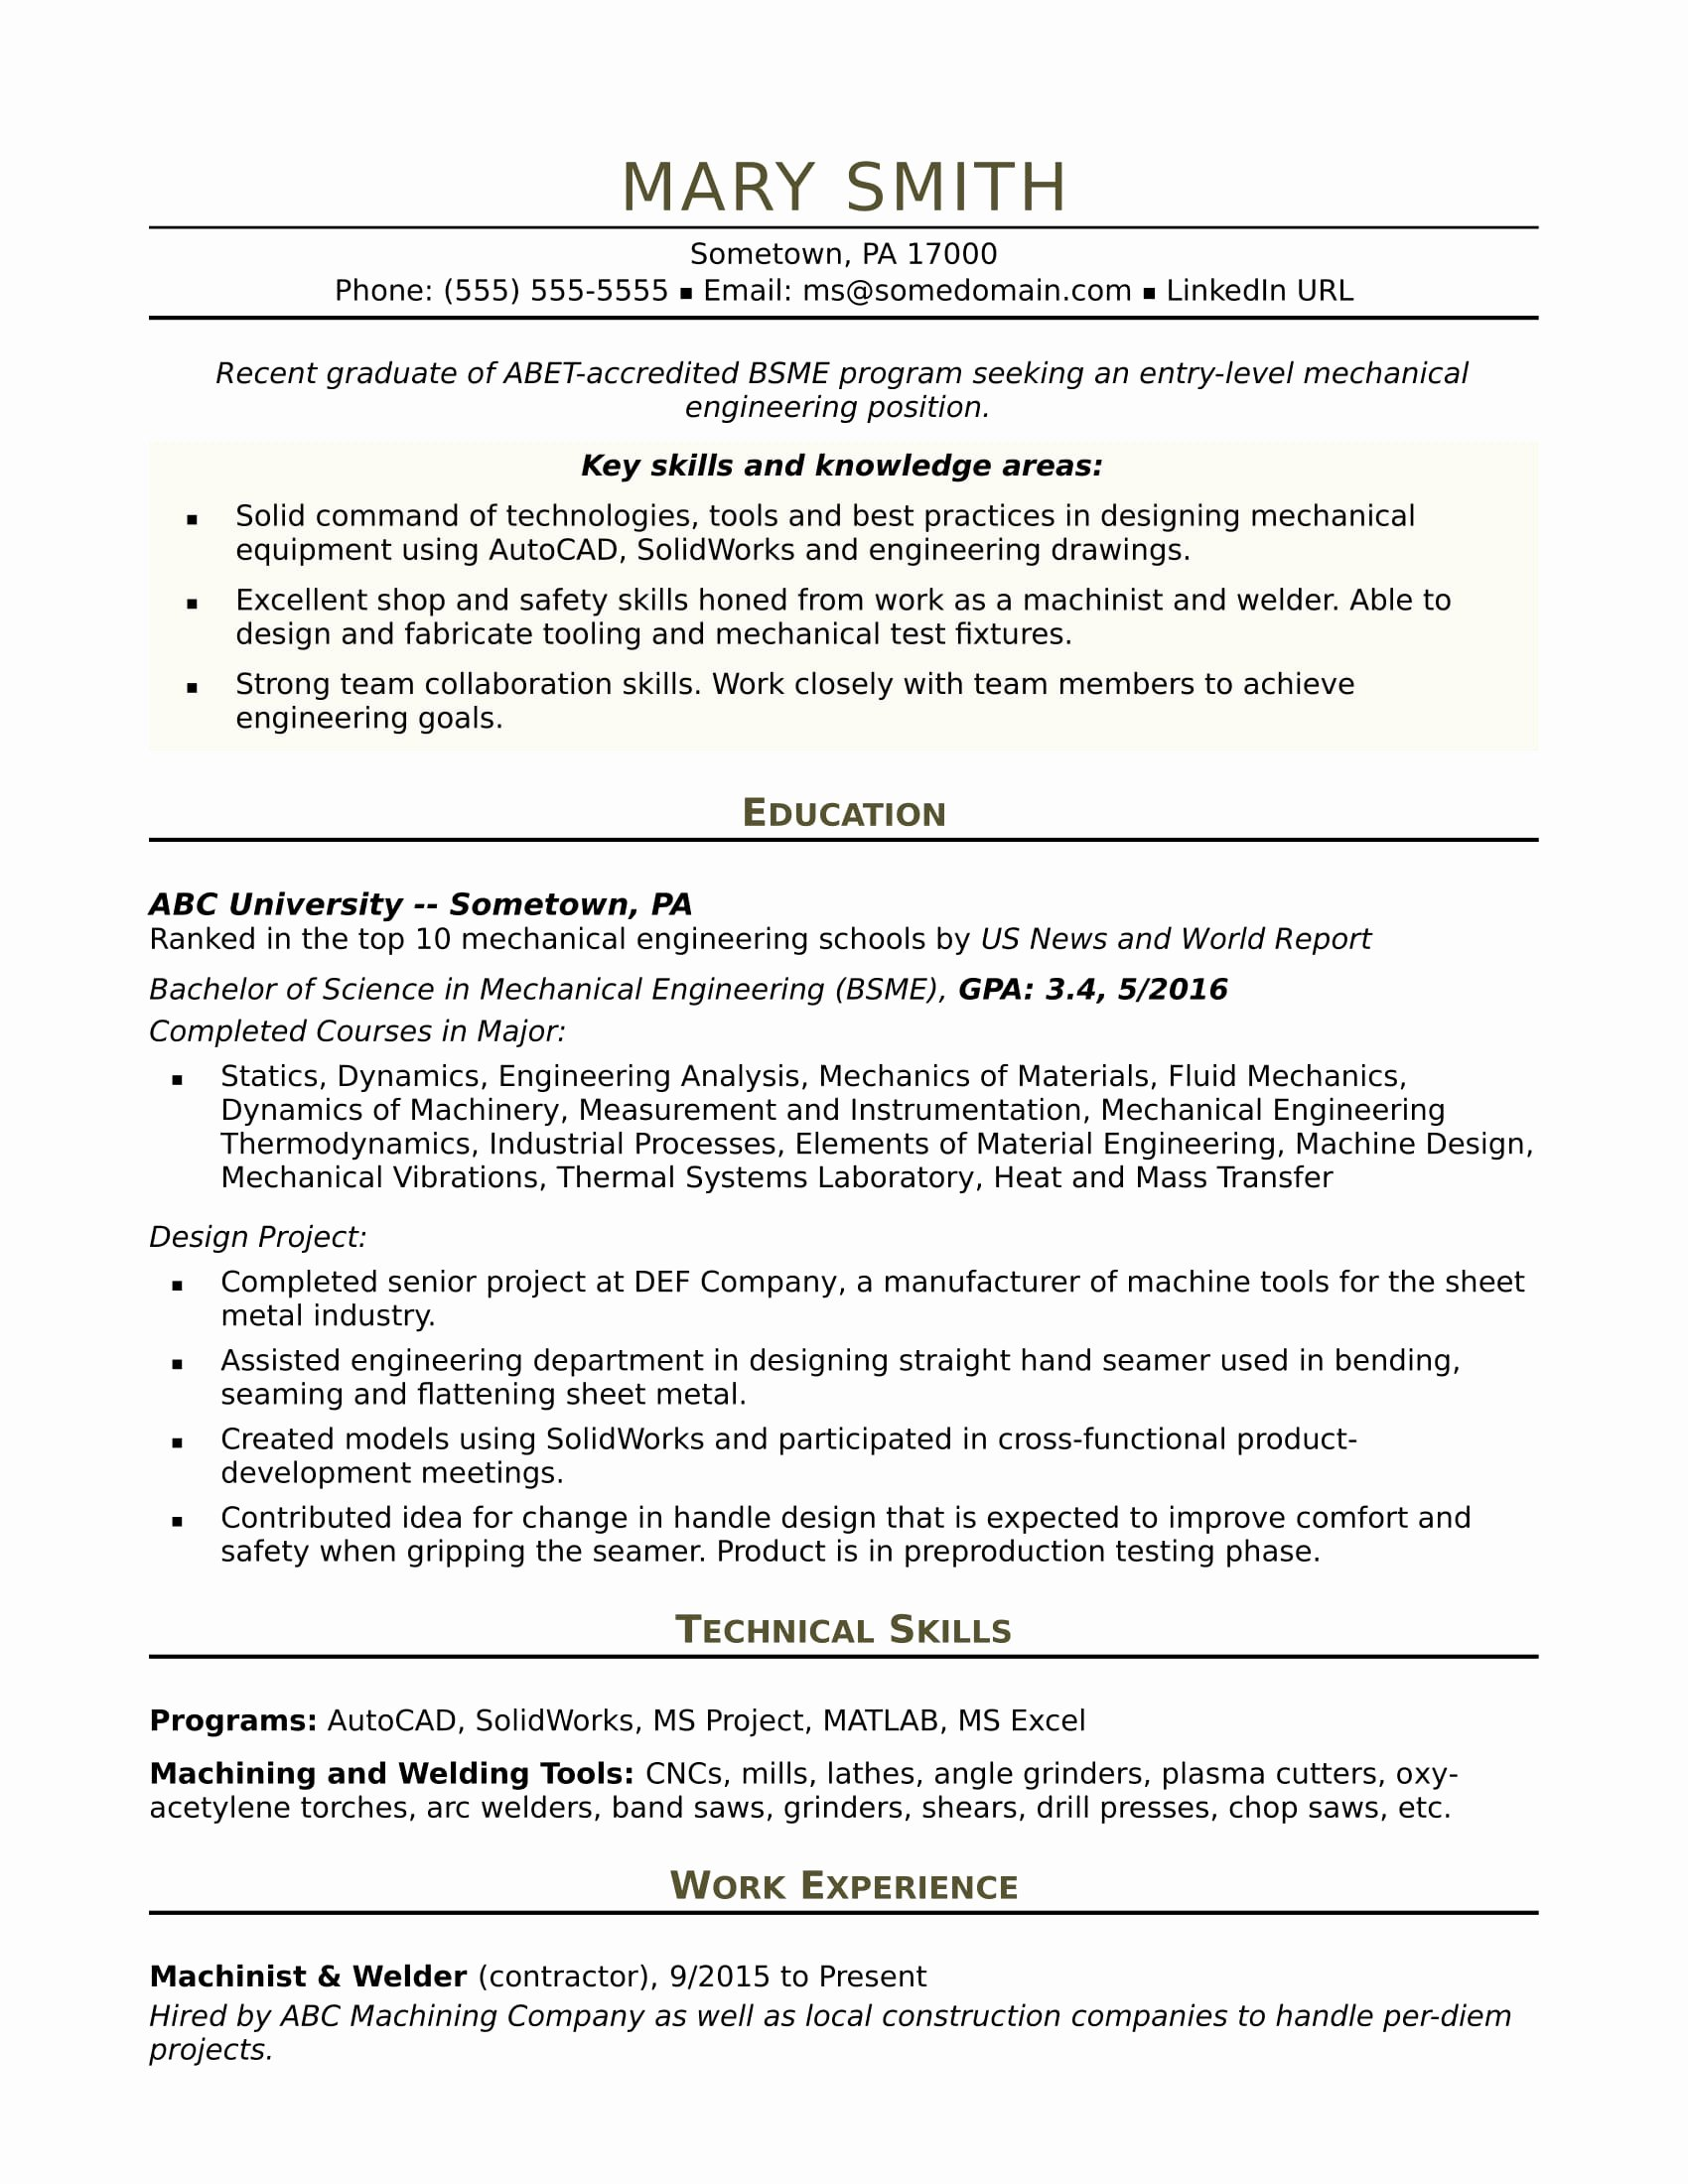 Mechanical Engineer Resume Templates New Sample Resume for An Entry Level Mechanical Engineer